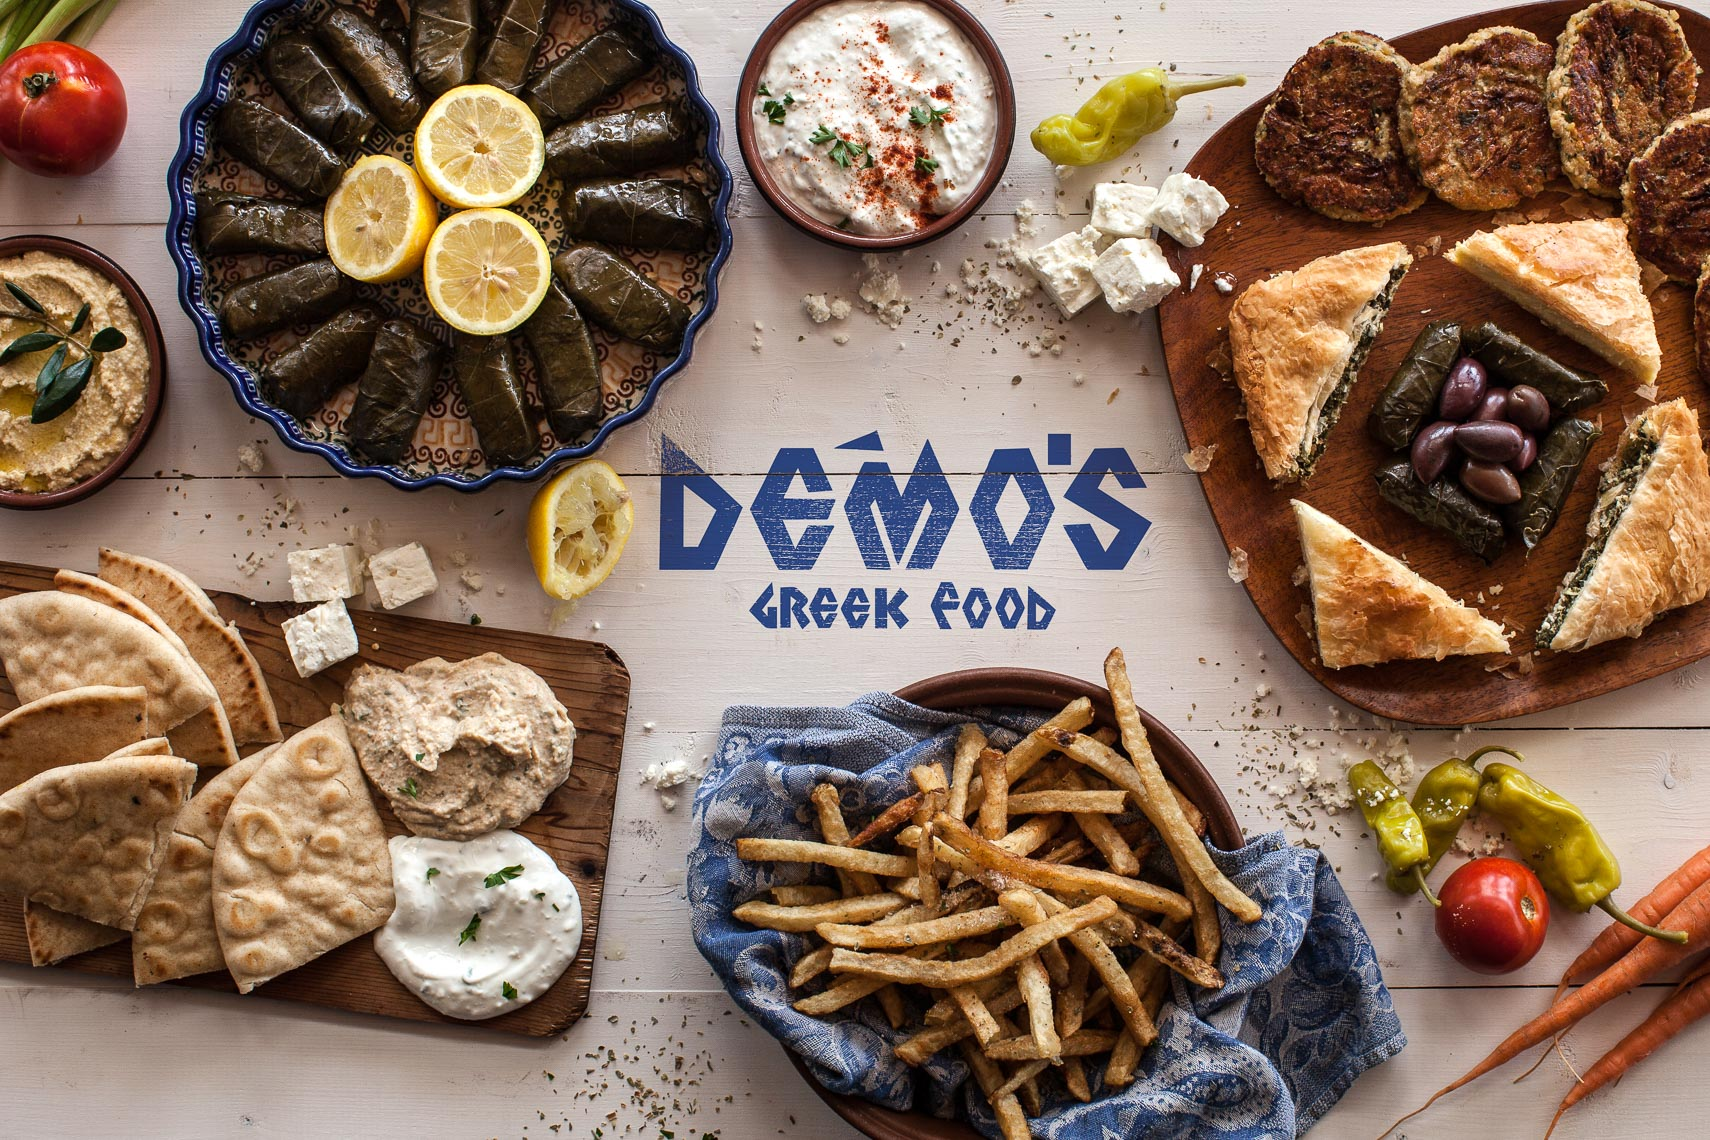 demos-greek-food-san-antonio-jason-risner-photography-7812-w-logo